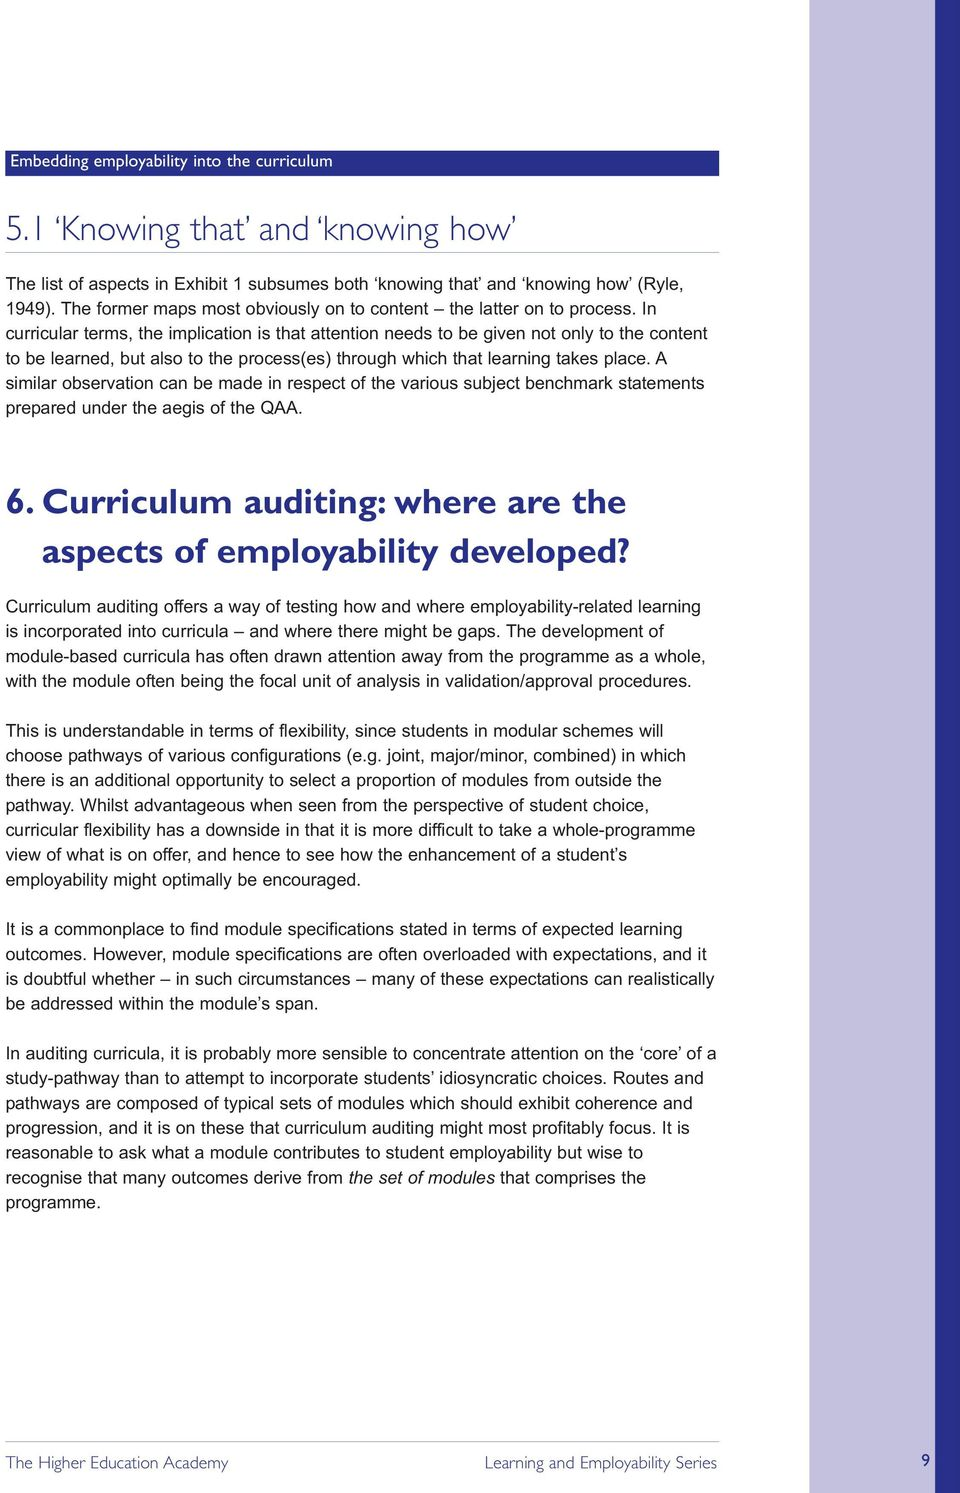 A similar observation can be made in respect of the various subject benchmark statements prepared under the aegis of the QAA. 6. Curriculum auditing: where are the aspects of employability developed?